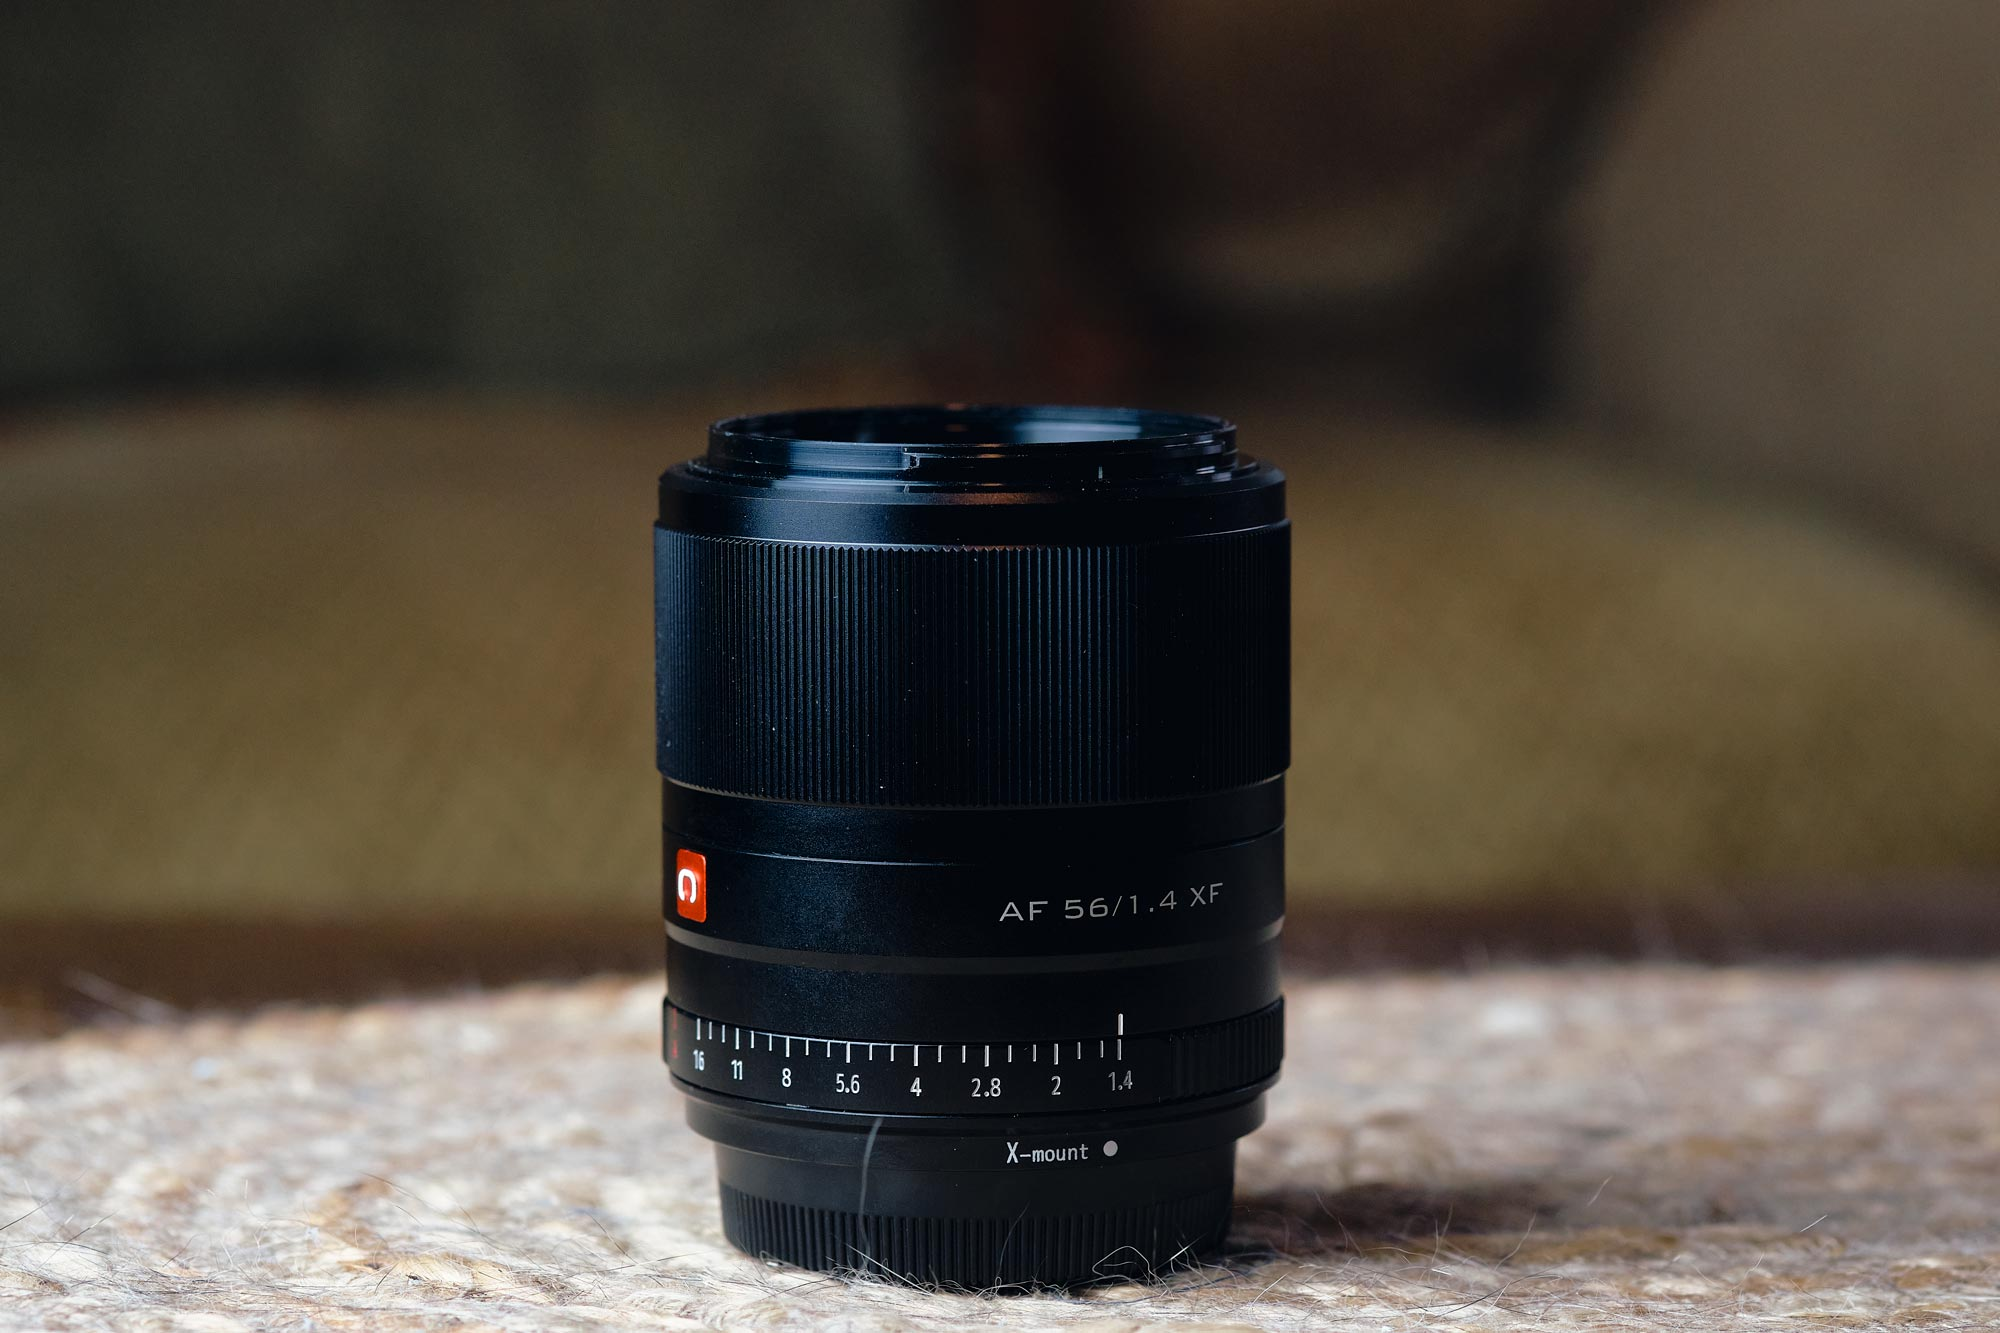 Featured image of the Viltrox 56mm f/1.4 XF for Fujifilm